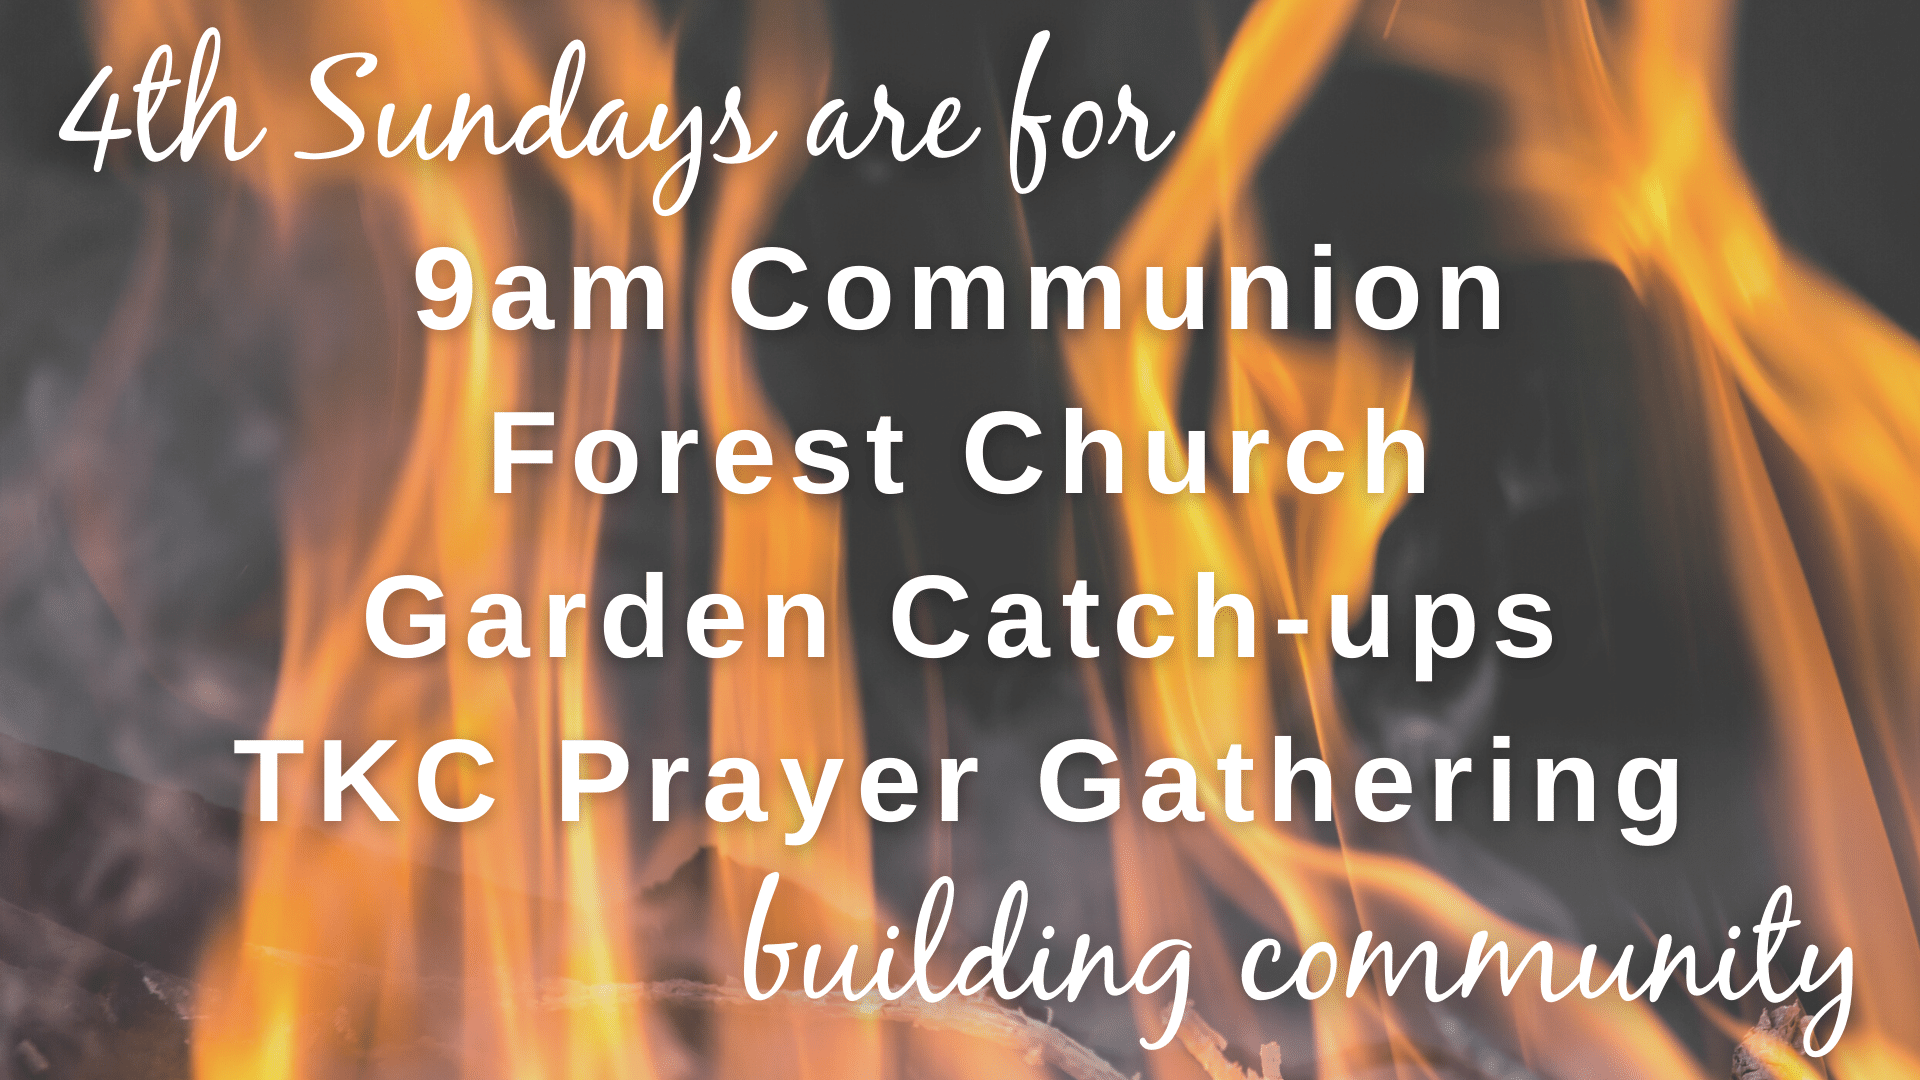 4th Sundays are for building community